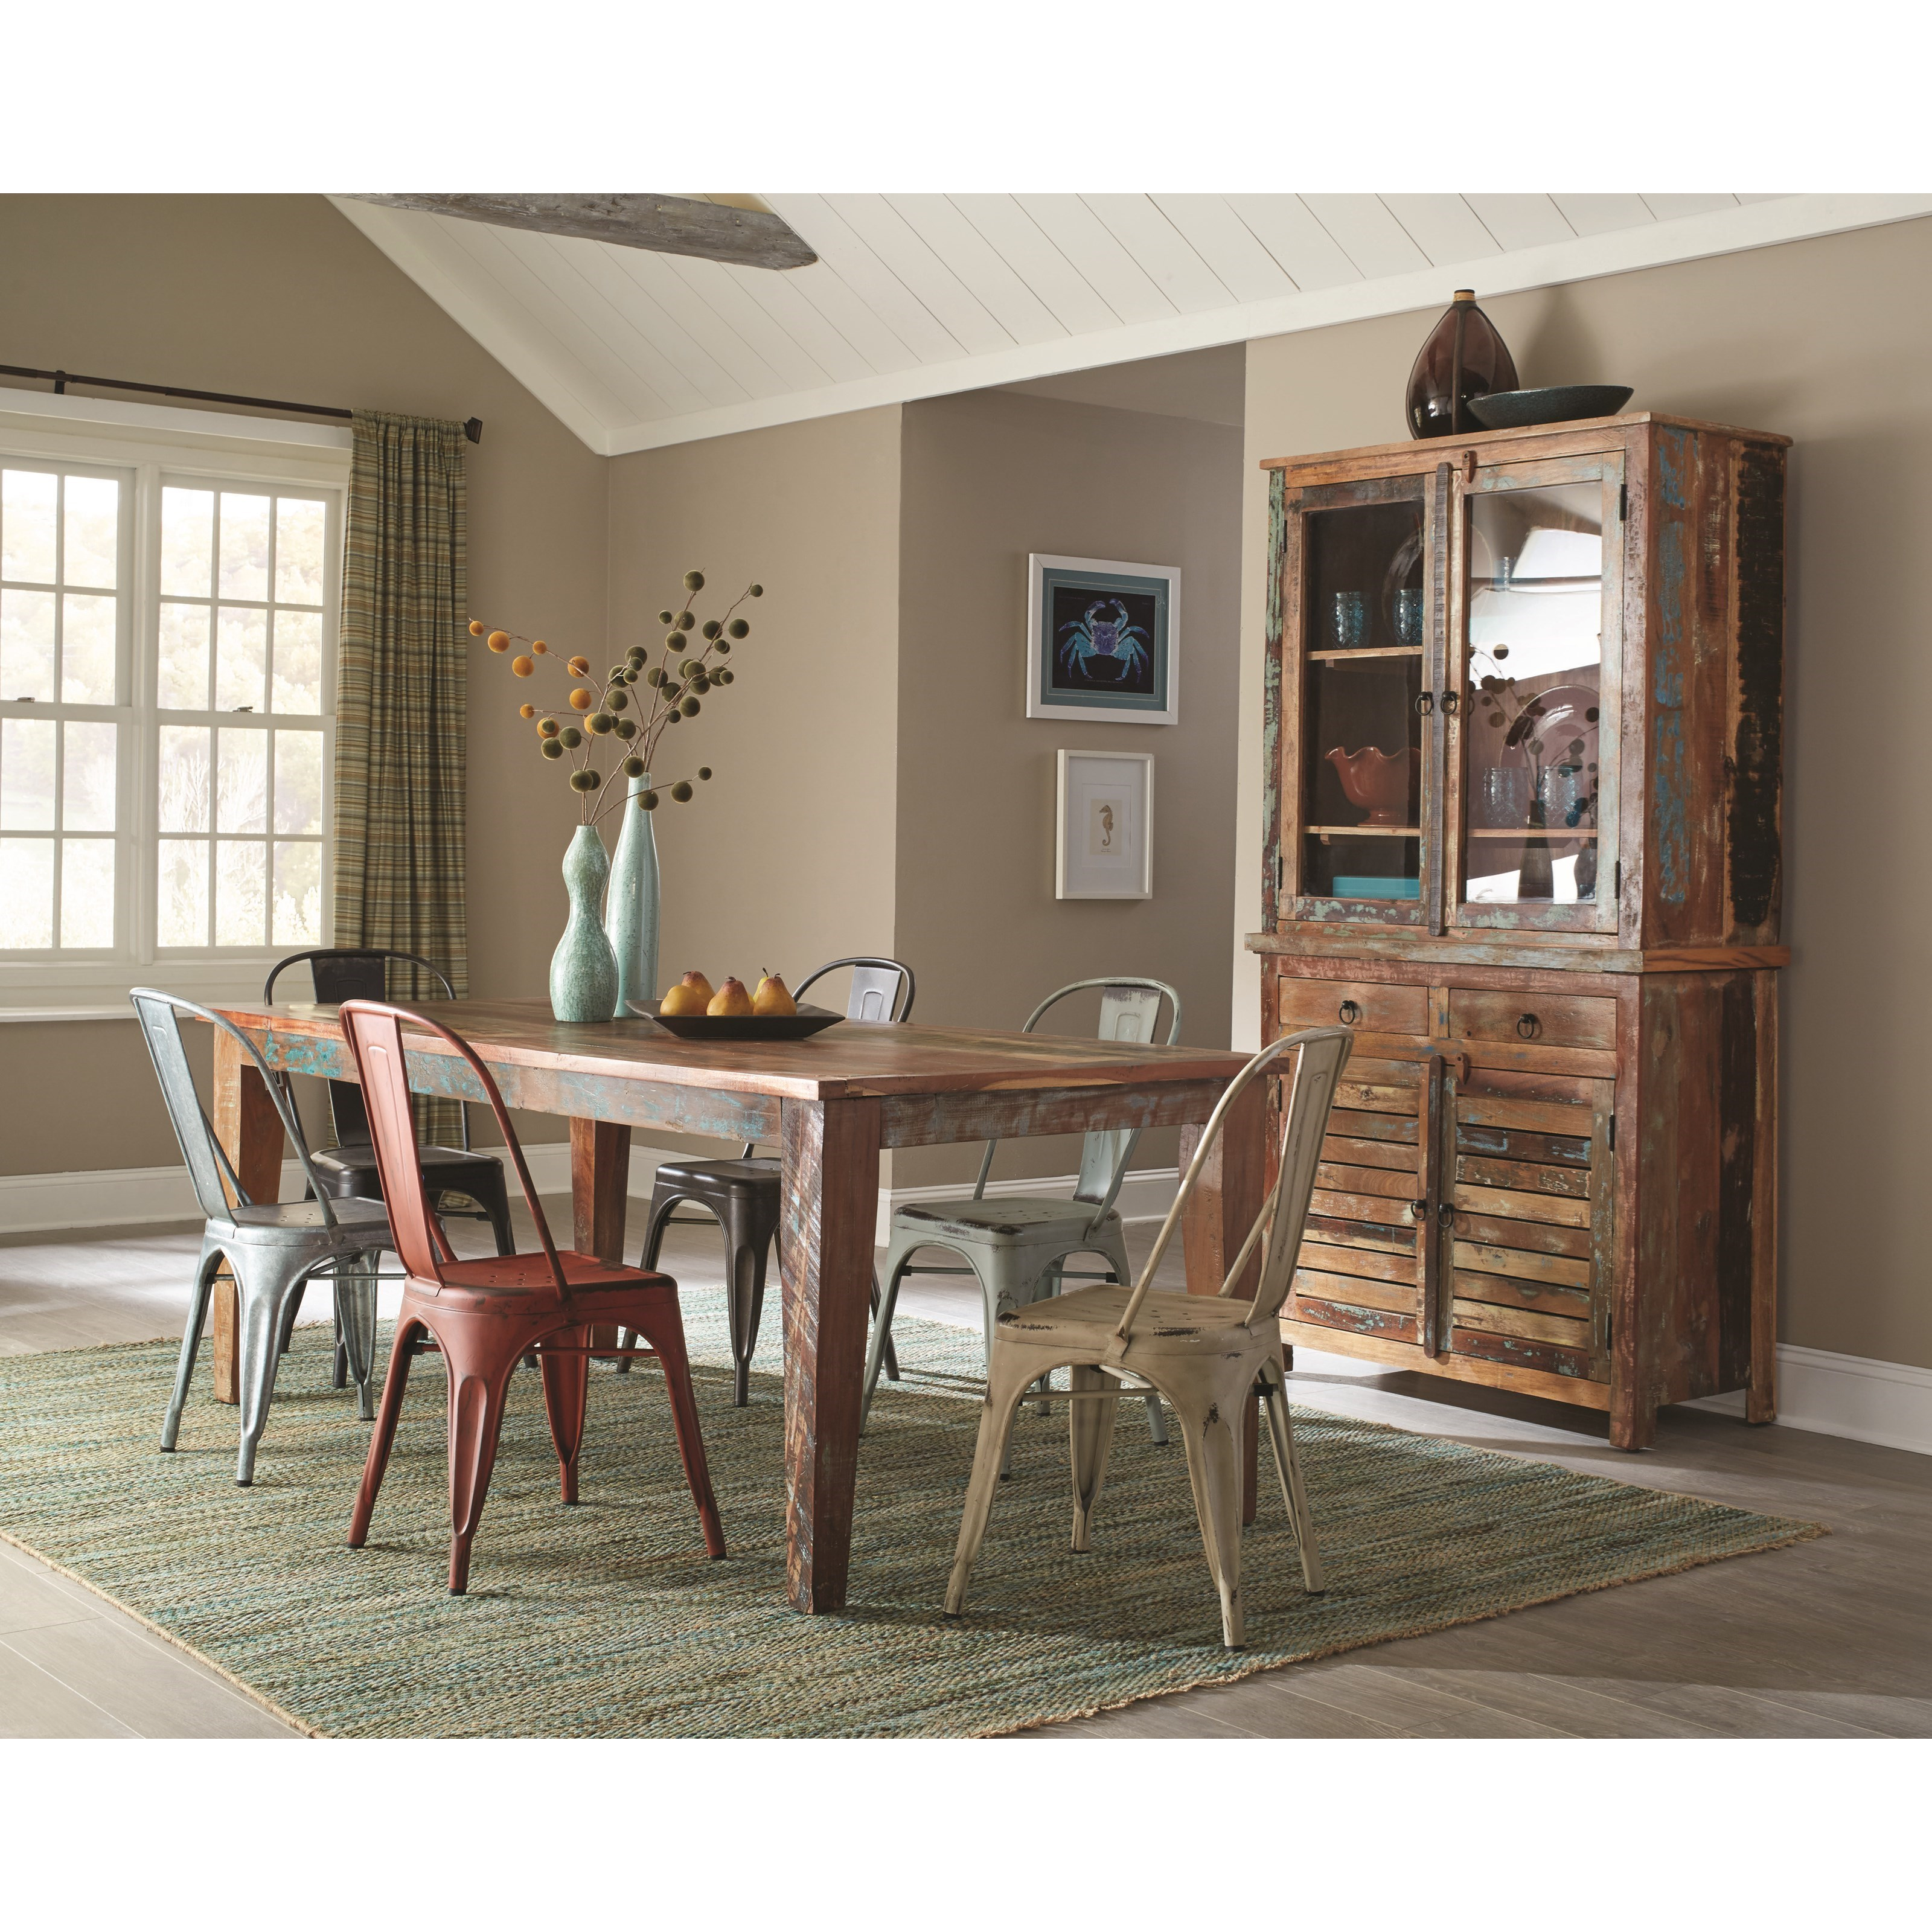 Coaster Keller Casual Dining Room Group - Item Number 1801 Dining Room Group 1  sc 1 st  Lapeer Furniture u0026 Mattress Center & Coaster Keller Casual Dining Room Group | Lapeer Furniture ...